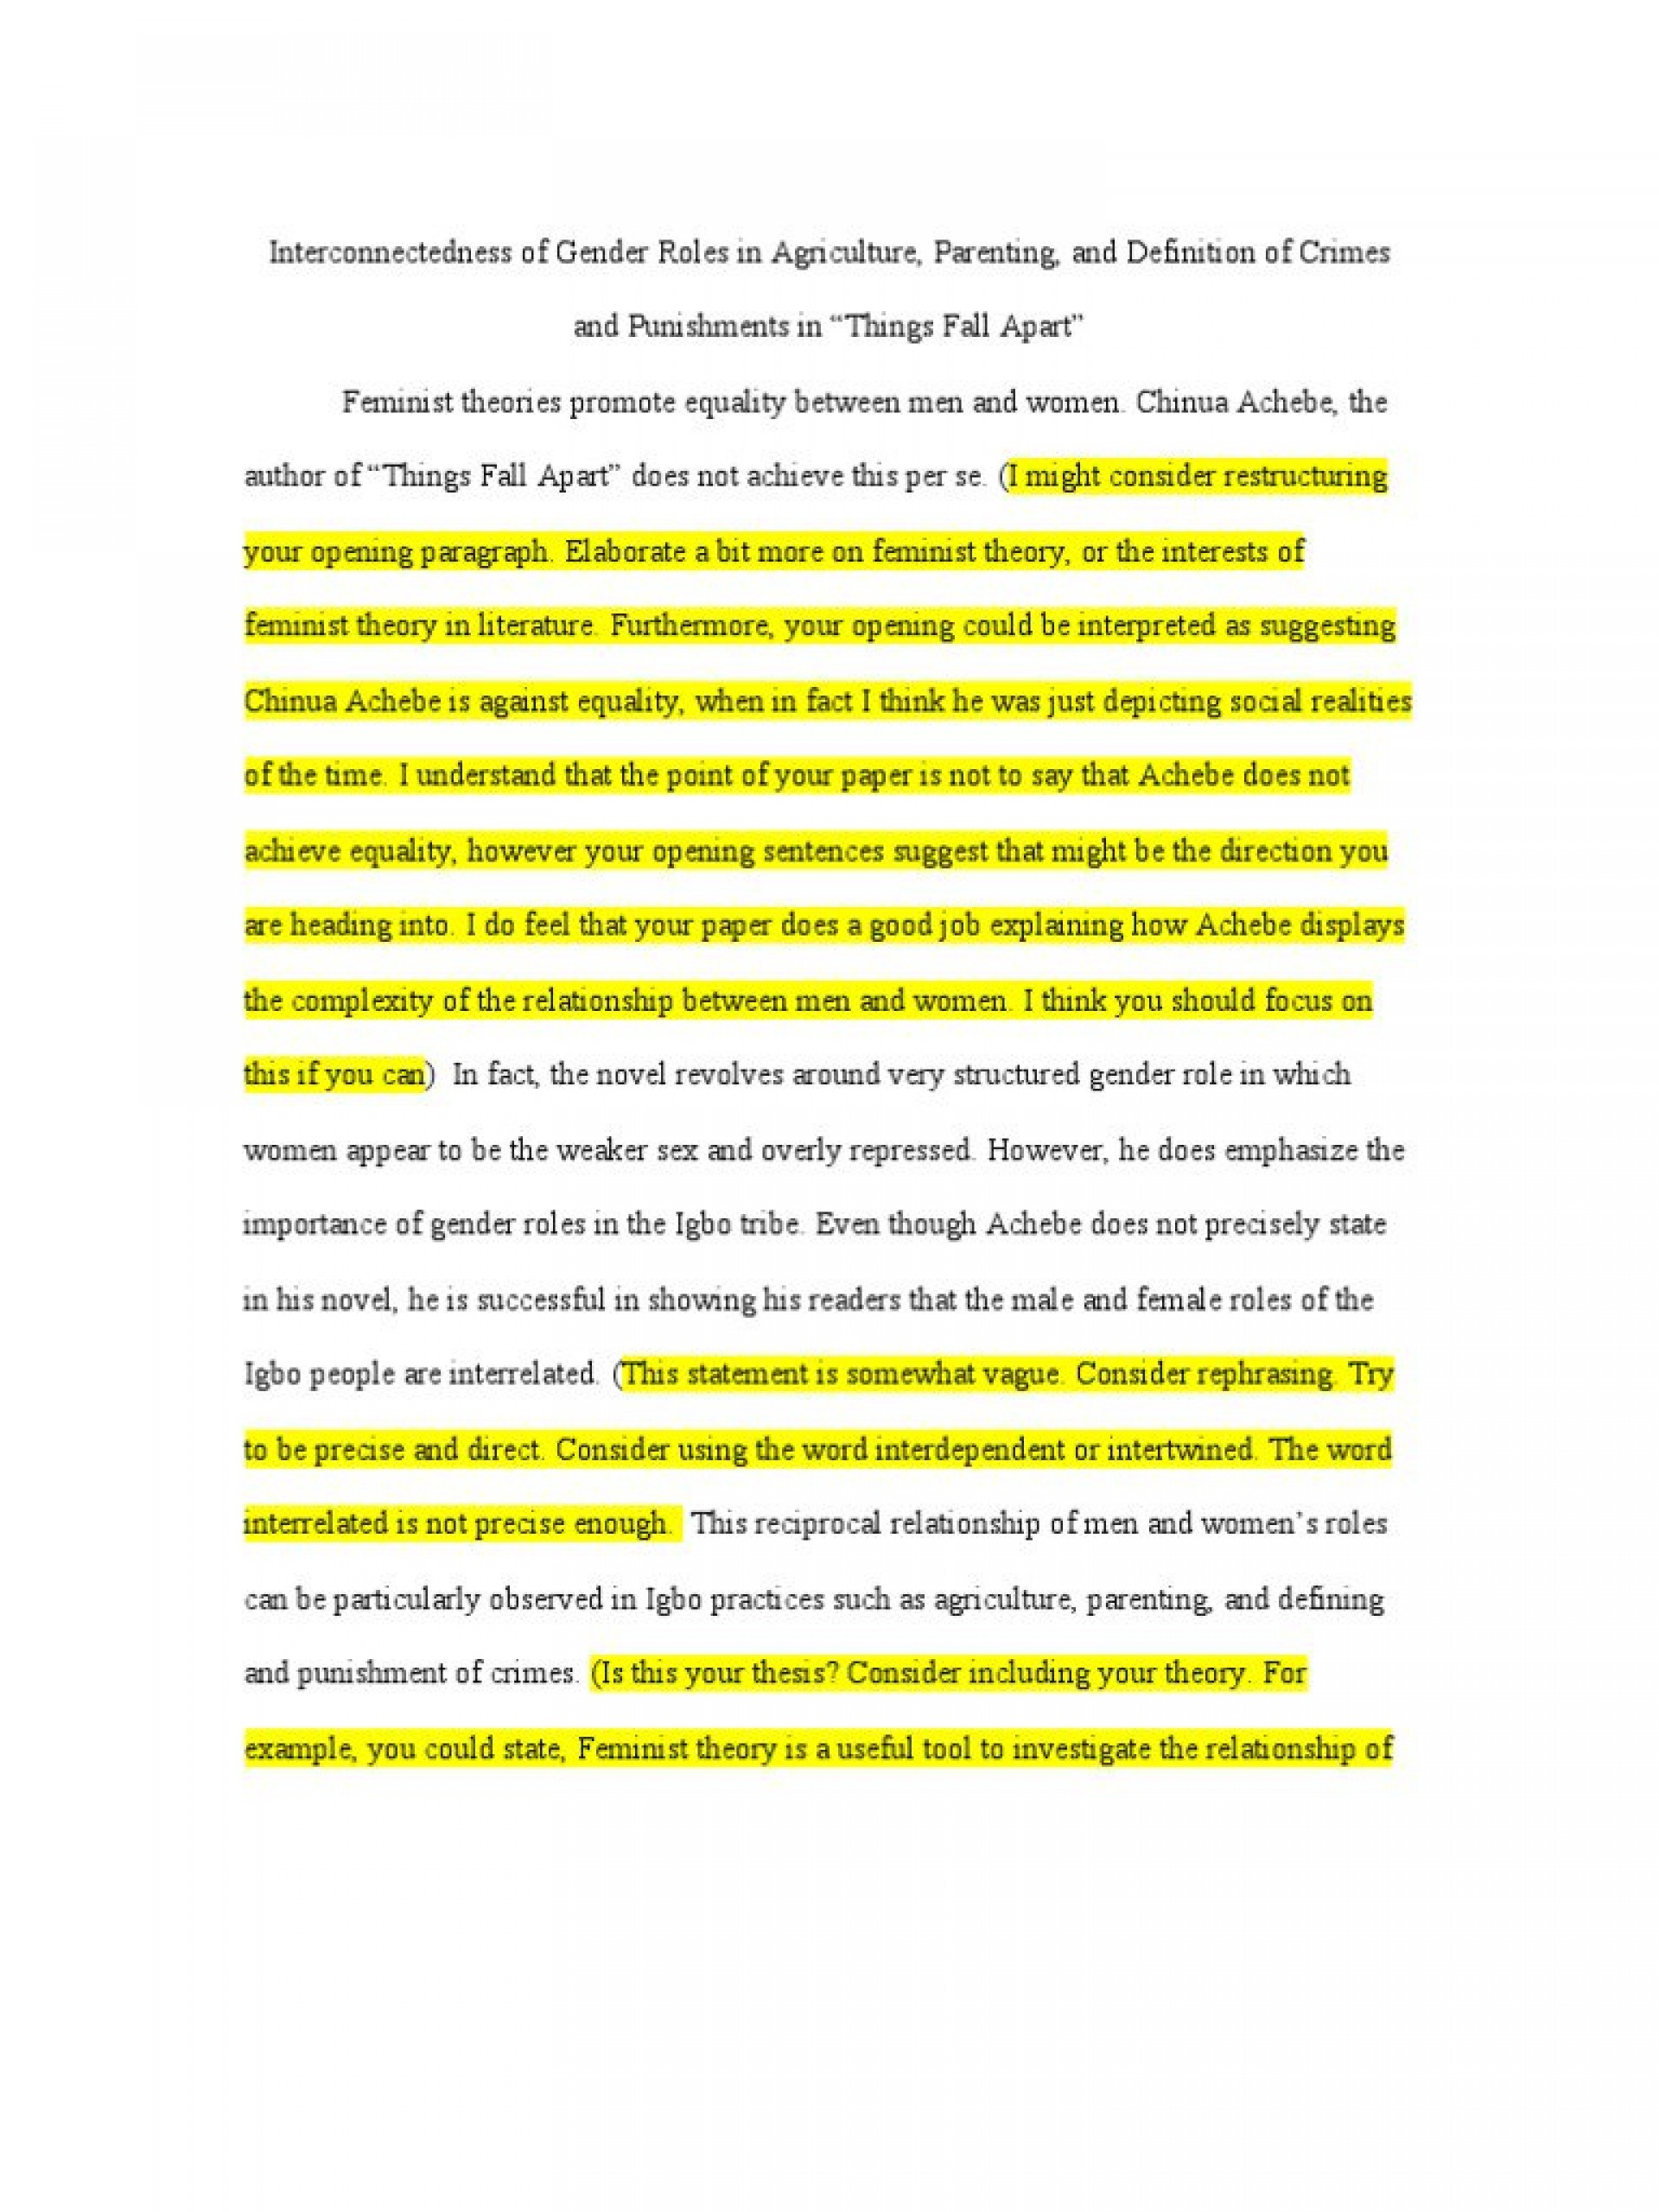 007 Essay Example Gender Equality About Inequality Dracula Essays Custom Argumentative On In The Workplace Top Outline Research Paper 300 Words 1920